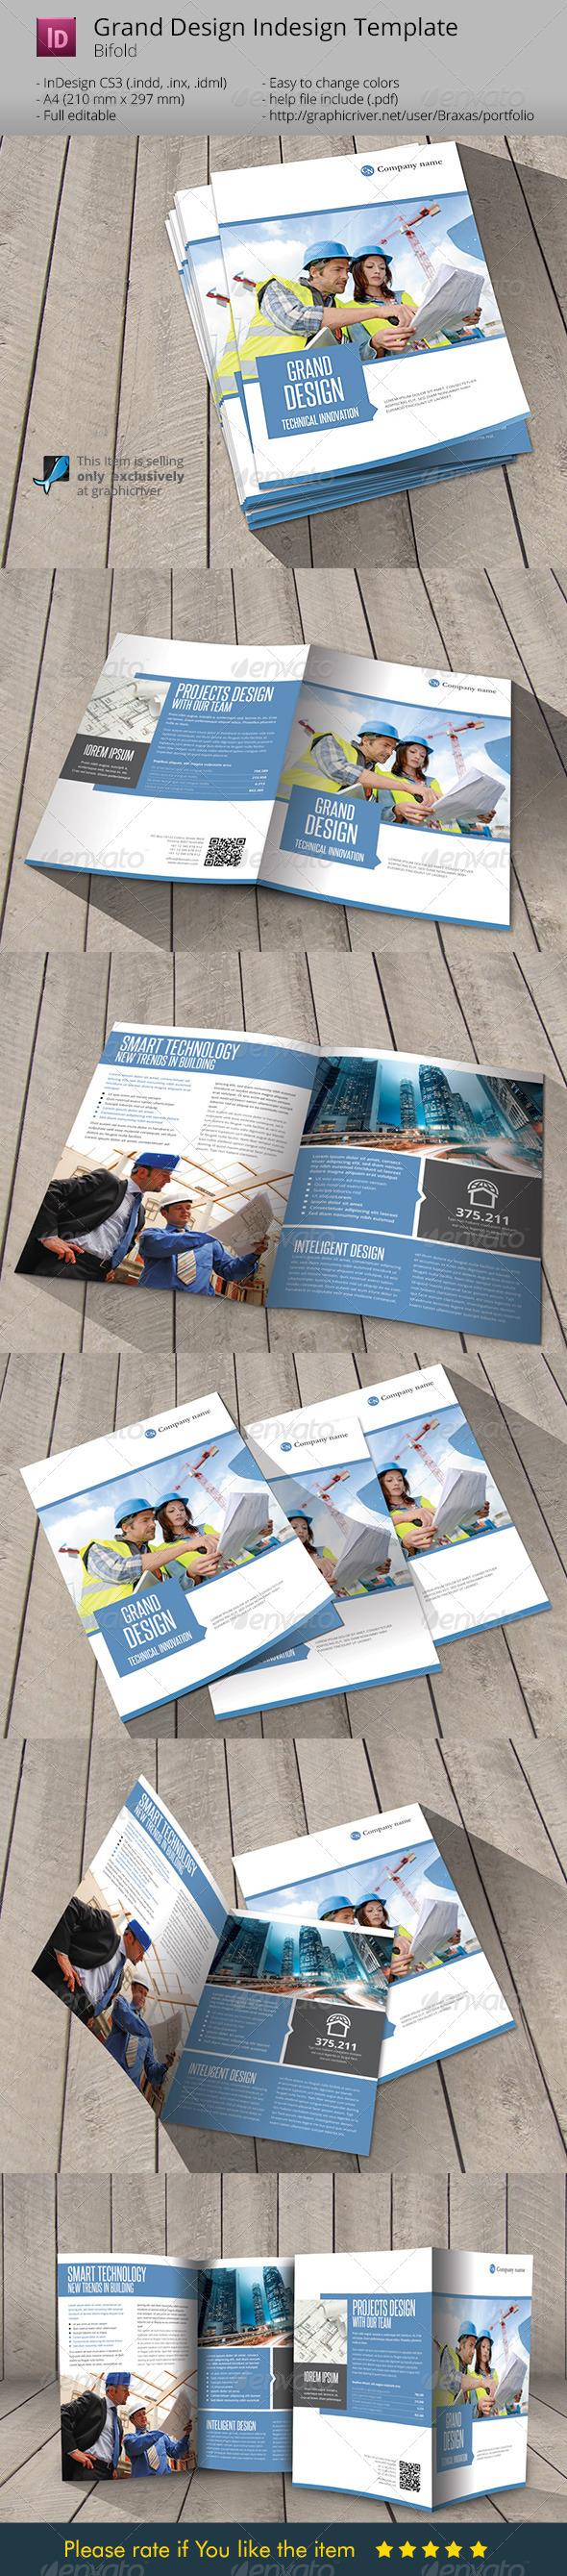 Grand Design _Indesign Template Brochure - Informational Brochures